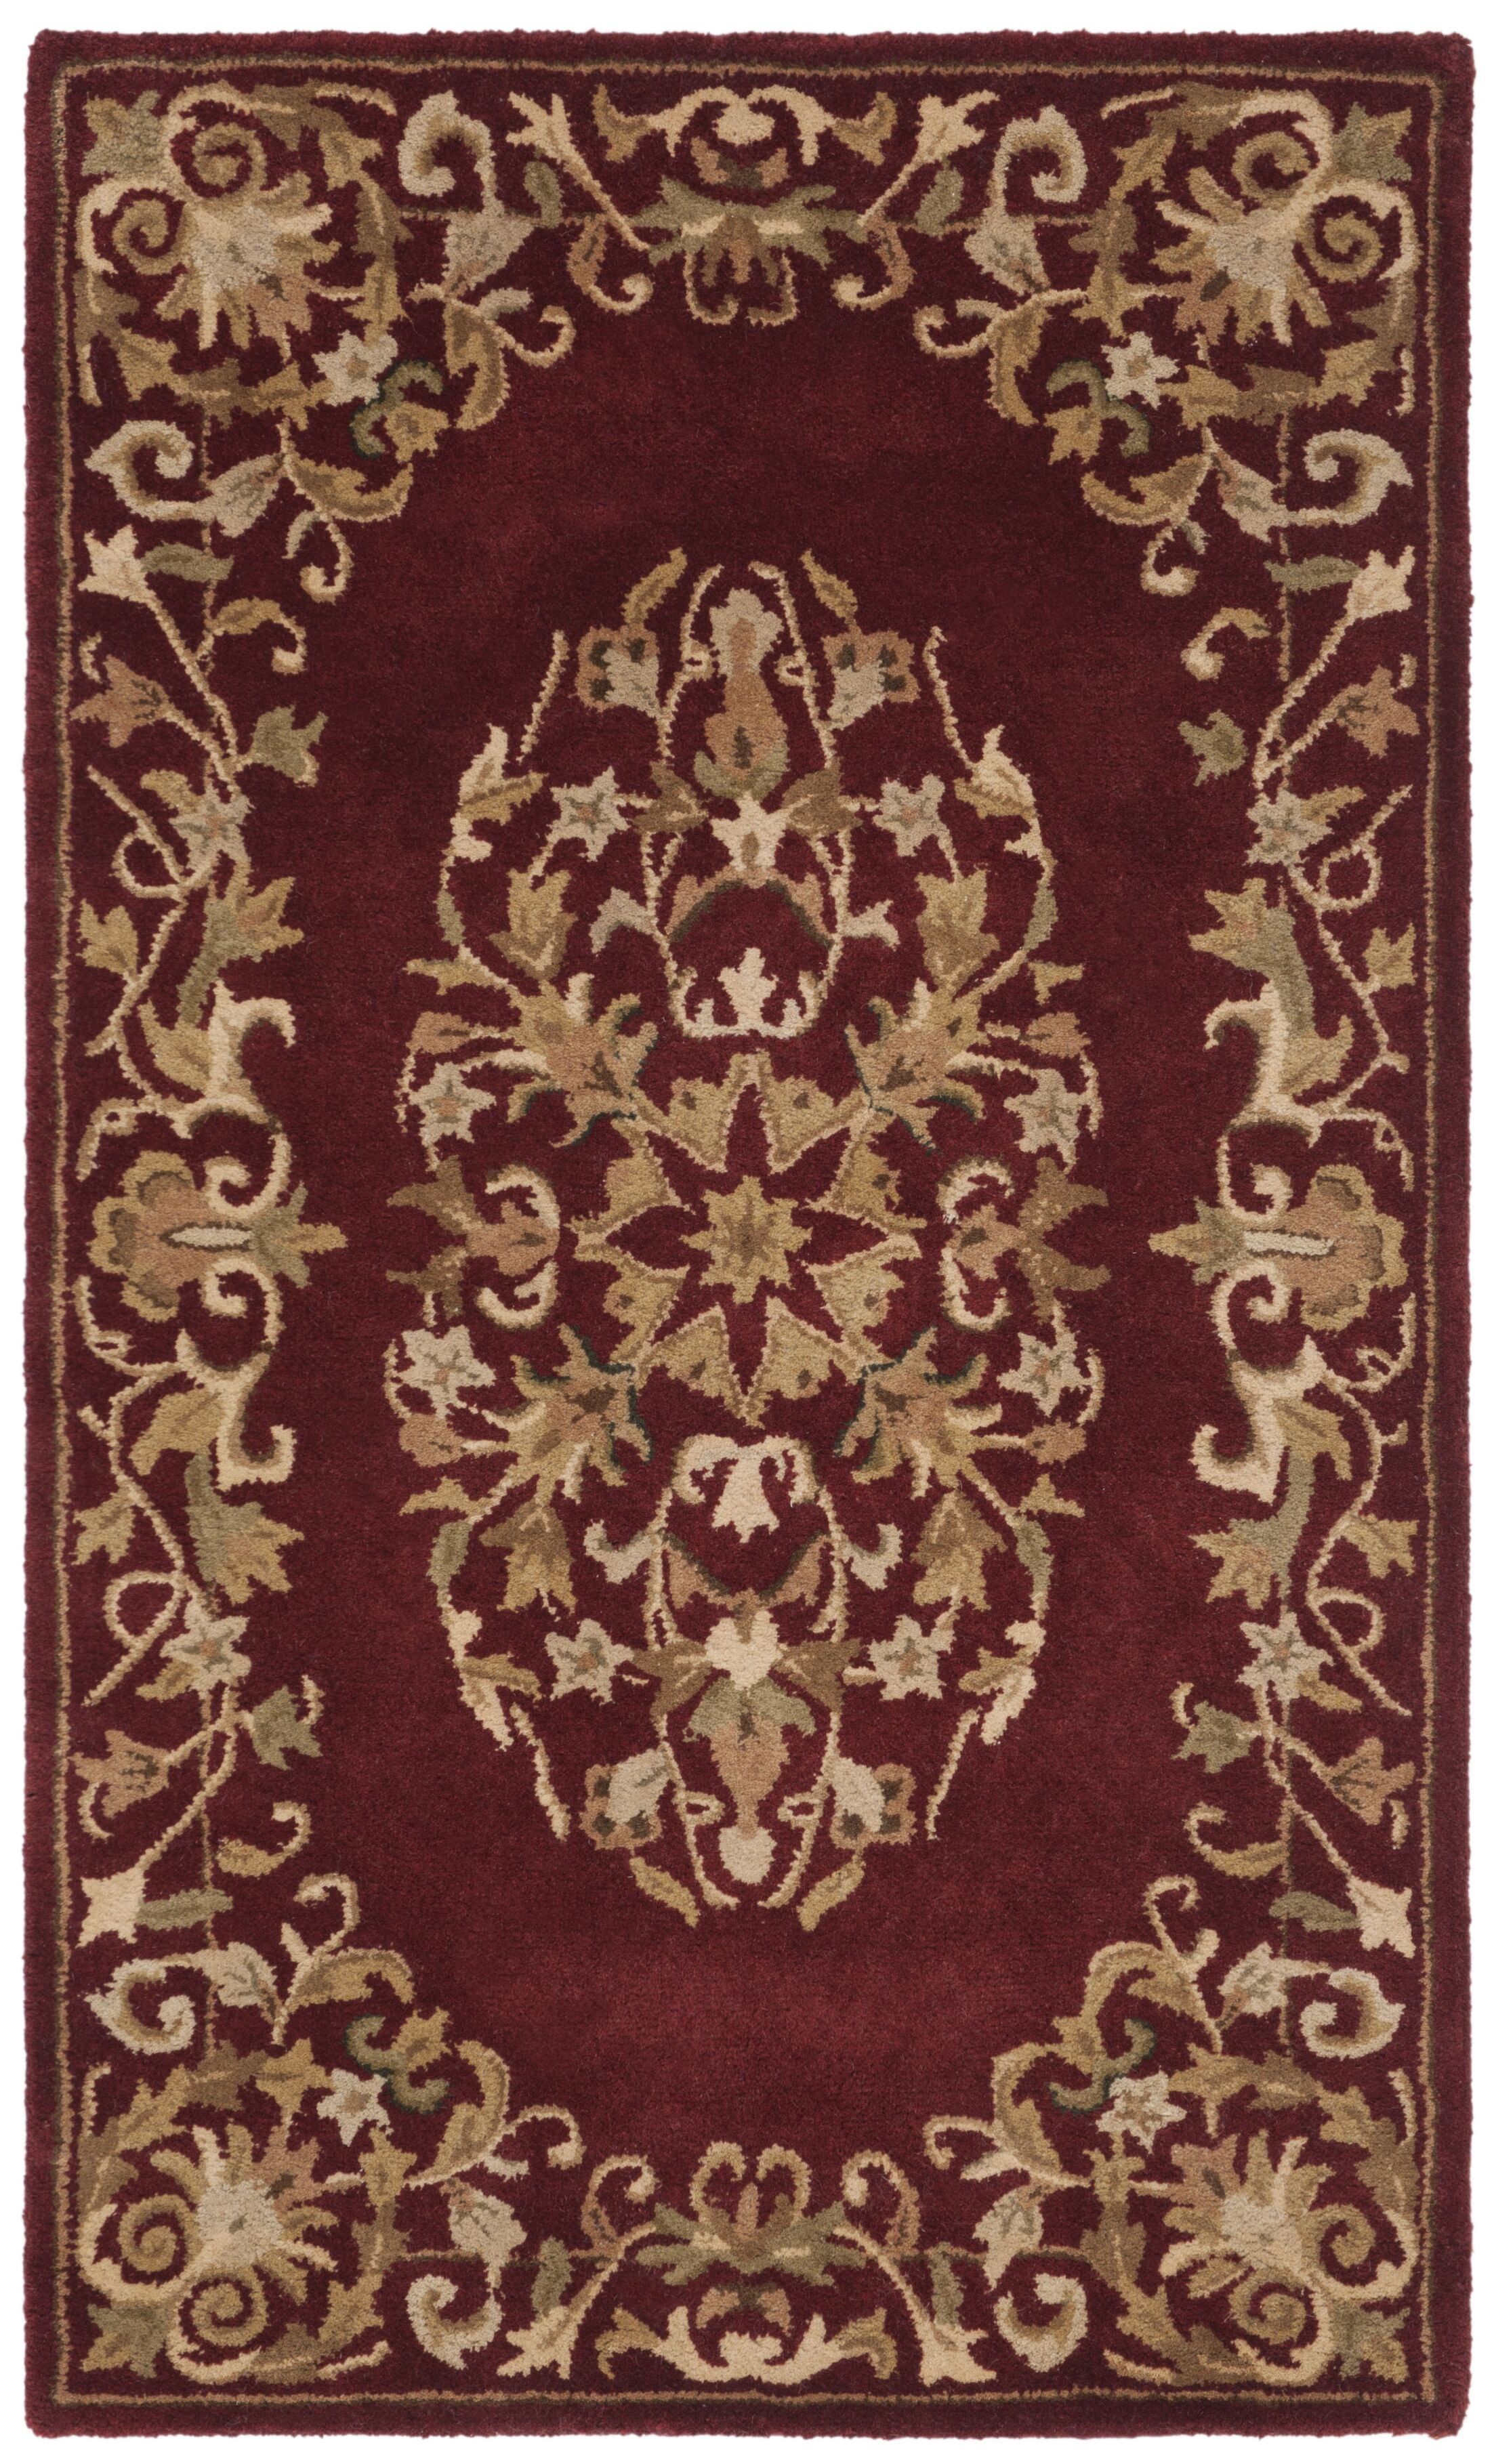 Balthrop Red/Yellow Floral Area Rug Rug Size: Rectangle 4' x 6'